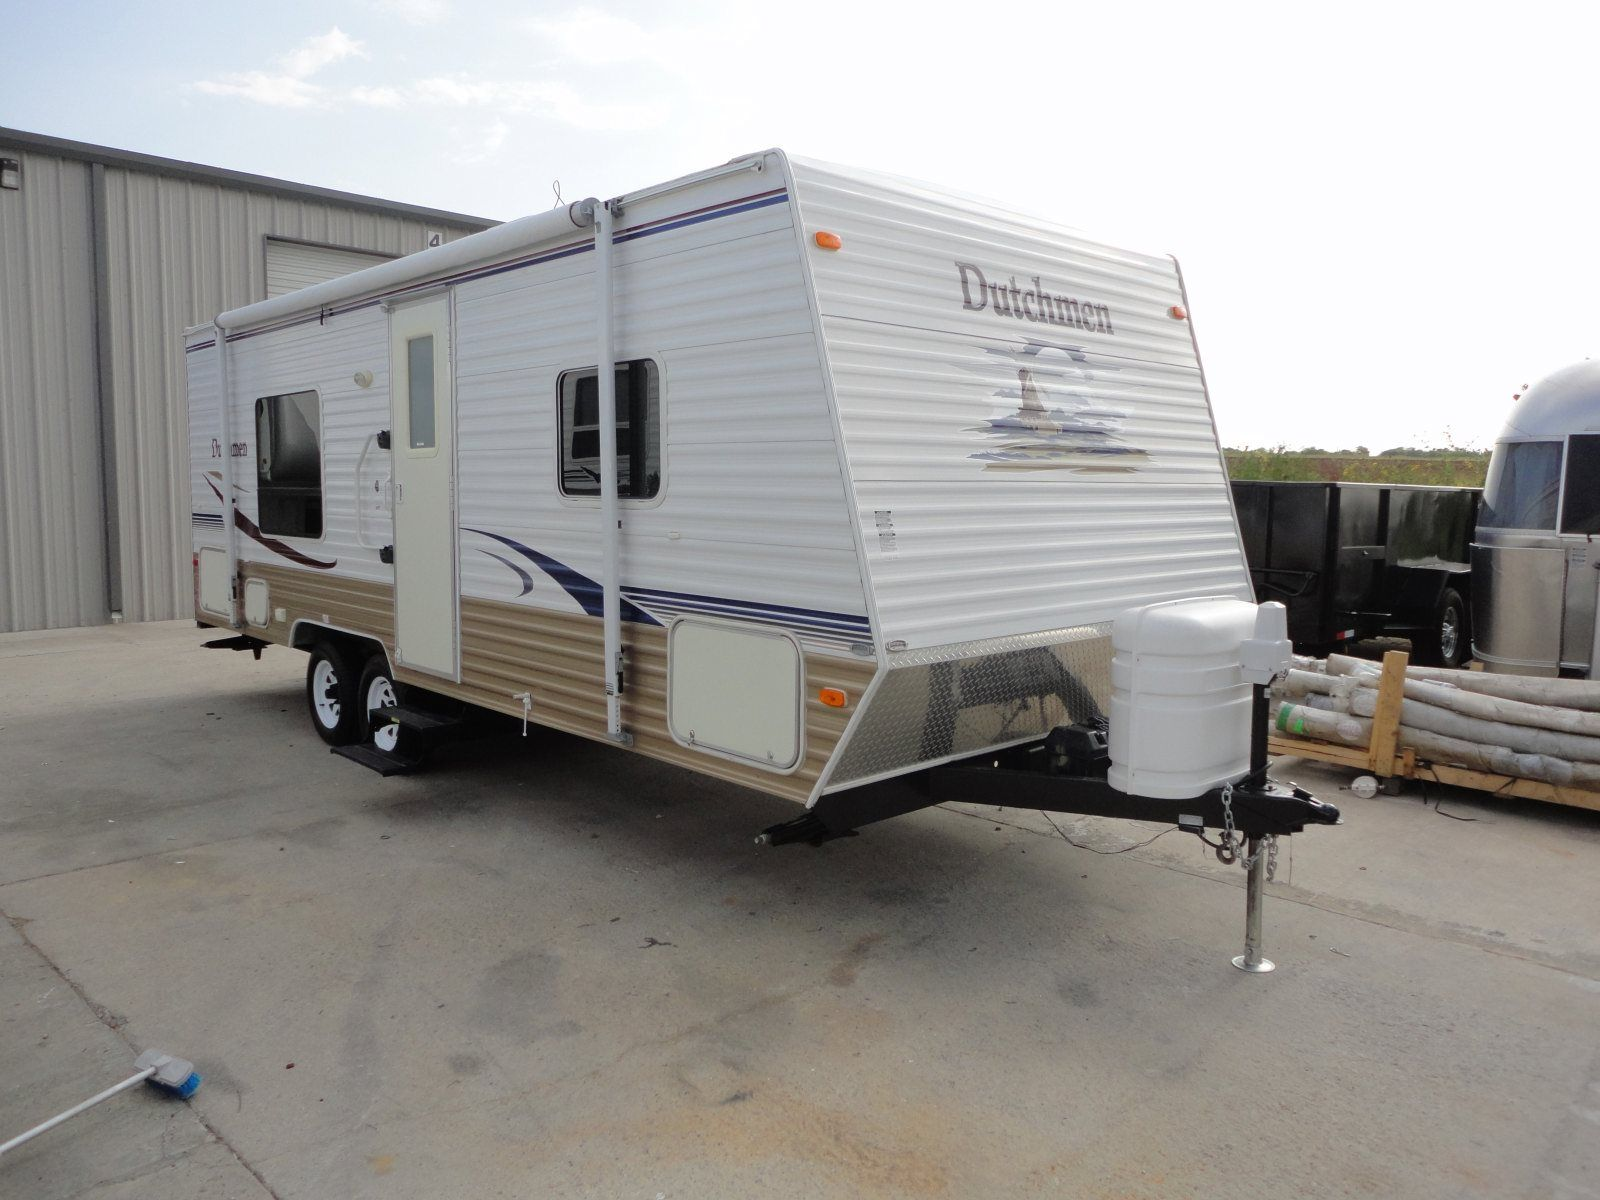 Here is a half ton towable 25ft family fun travel trailer that is sure to get you excited! This 2006 Dutchmen 25F is just what you need to take the family on that much anticipated family vacation this summer! Priced to sell at ONLY $8,995.00 see more at BudgetRVsOfTexas.com